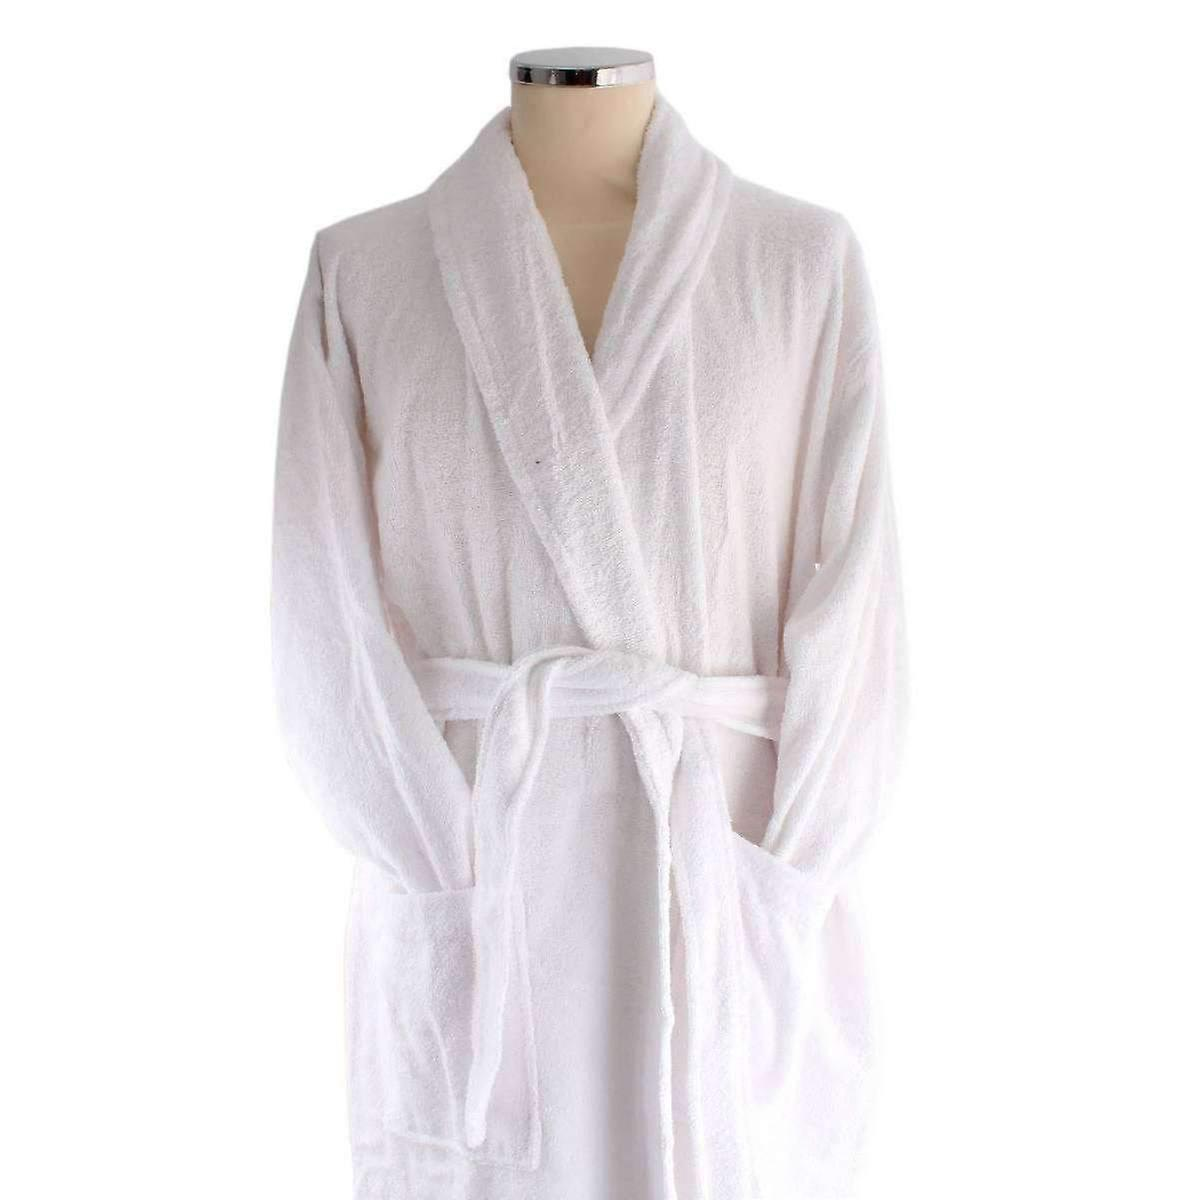 Bown of London Terry Egyptian Cotton Dressing Gown - White | Fruugo